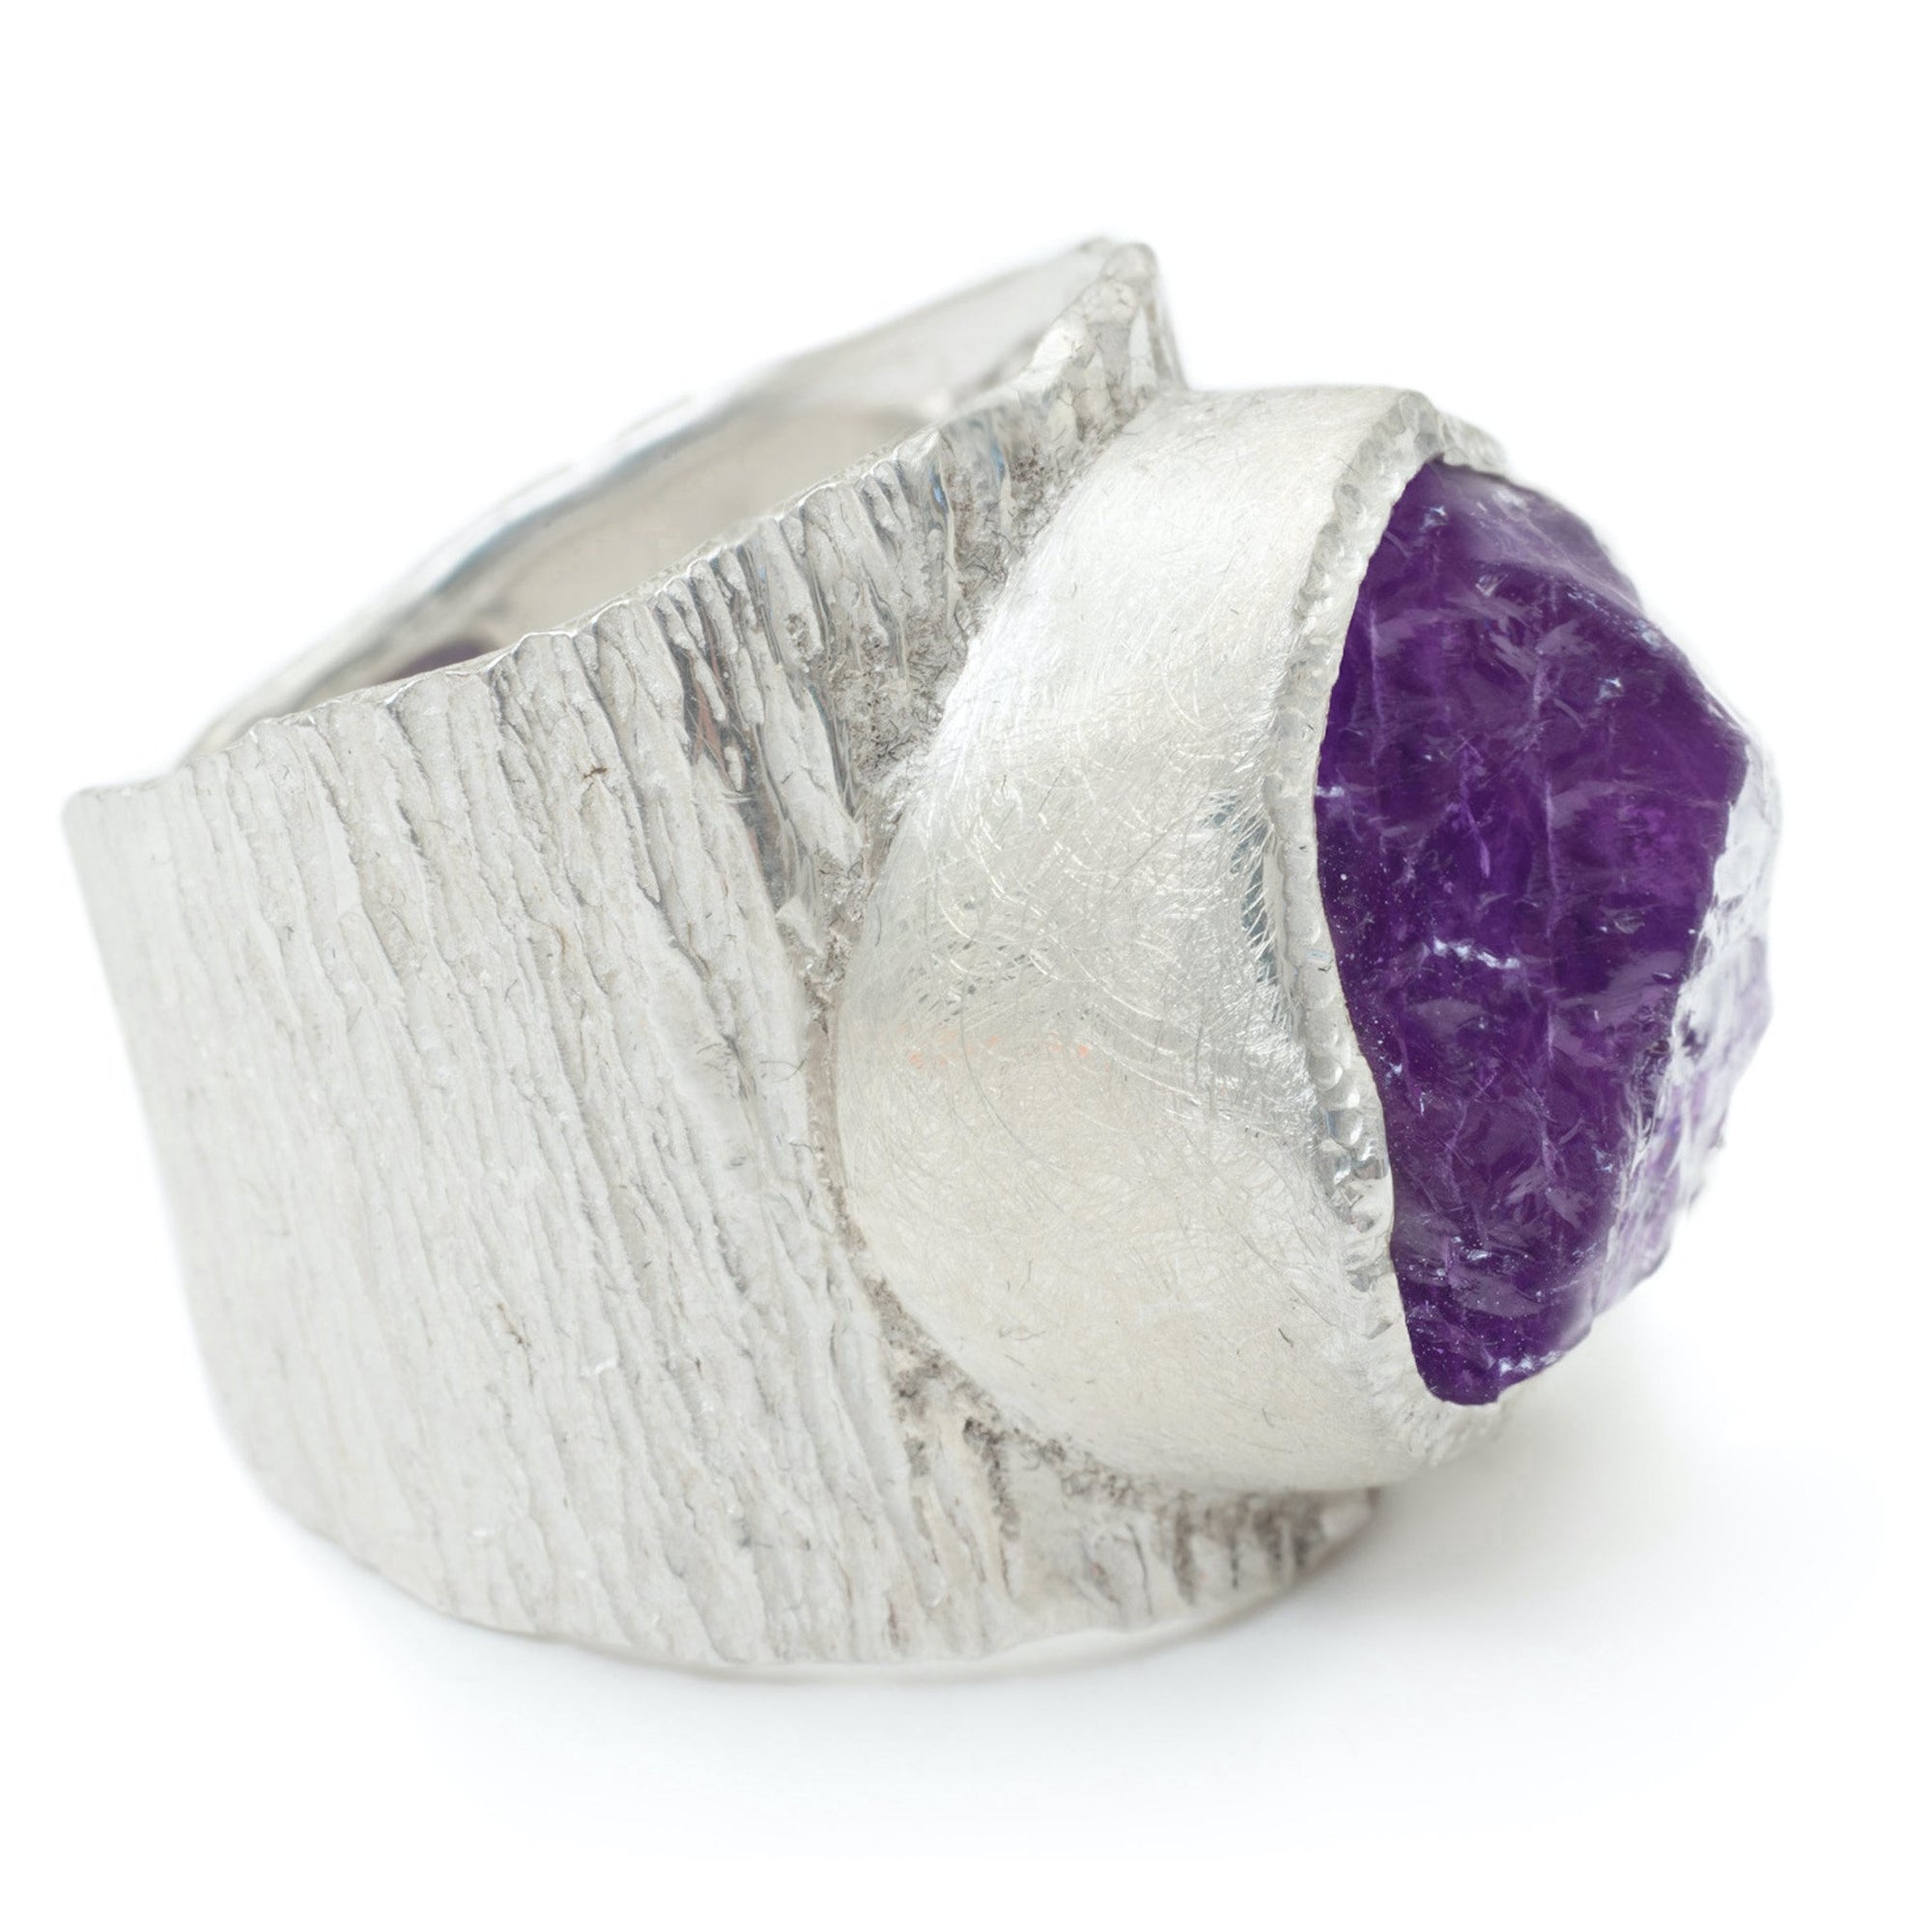 'Taboo' Amethyst Macho Ring - Large Stone